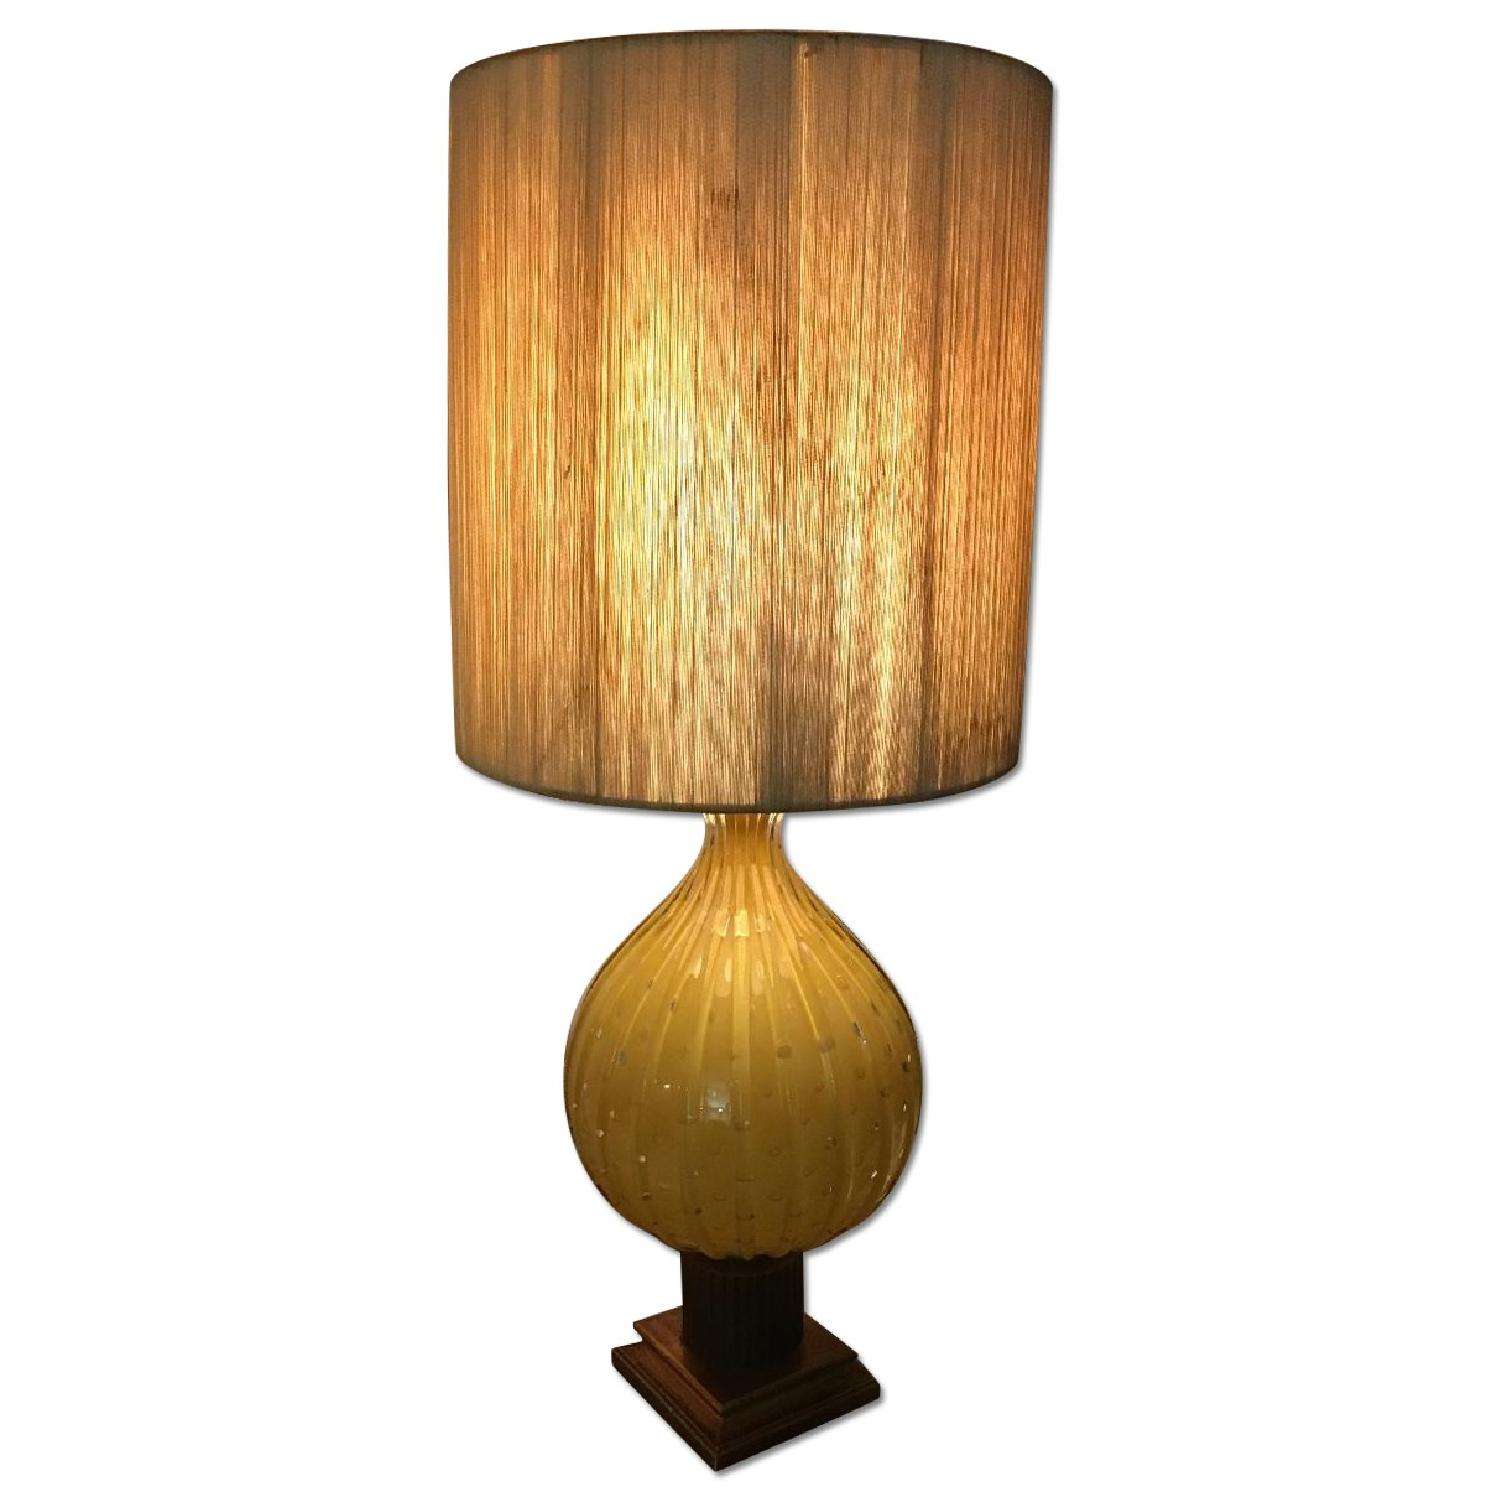 Blown glass table lamp aptdeco blown glass table lamp mozeypictures Gallery